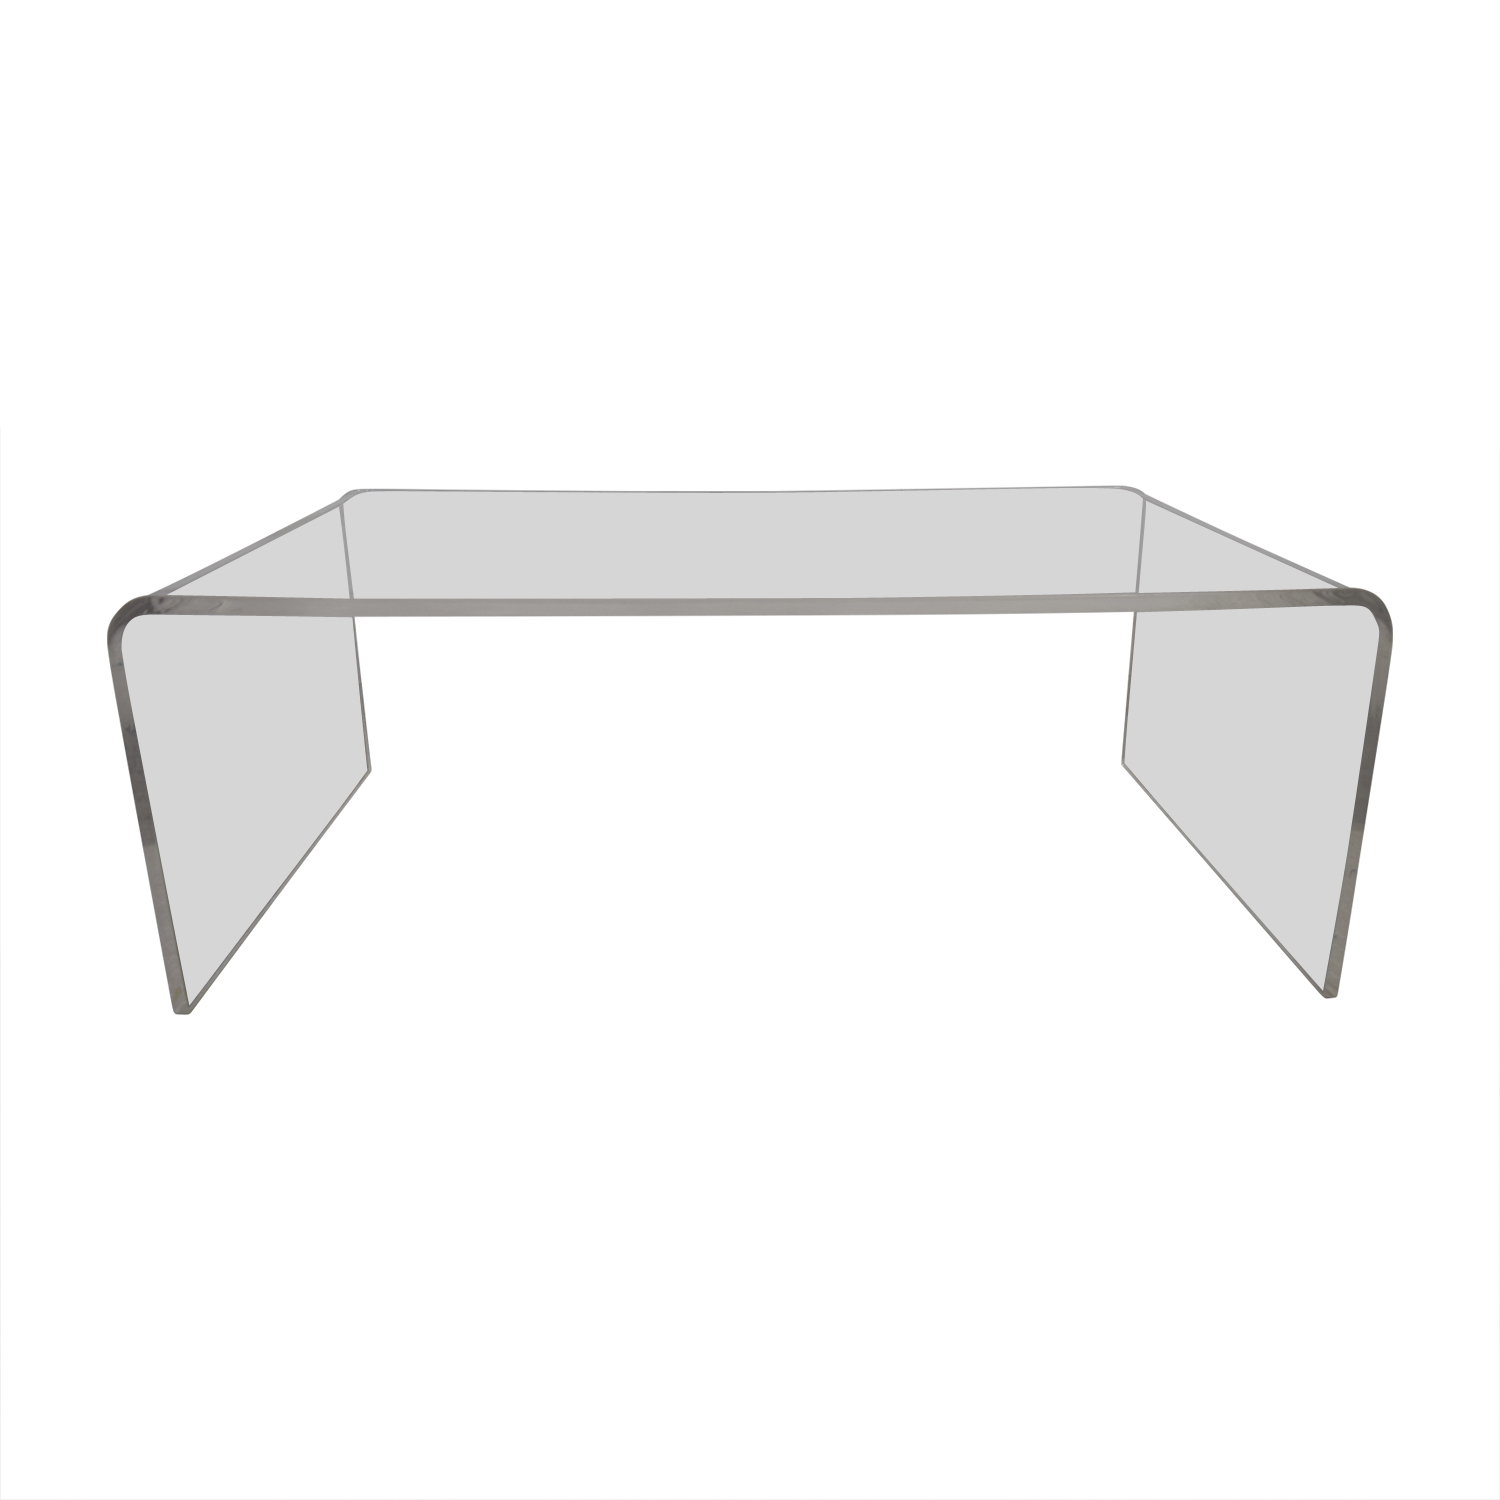 Astounding 79 Off Cb2 Cb2 Peekaboo Acrylic Ghost Tall Coffee Table Tables Unemploymentrelief Wooden Chair Designs For Living Room Unemploymentrelieforg